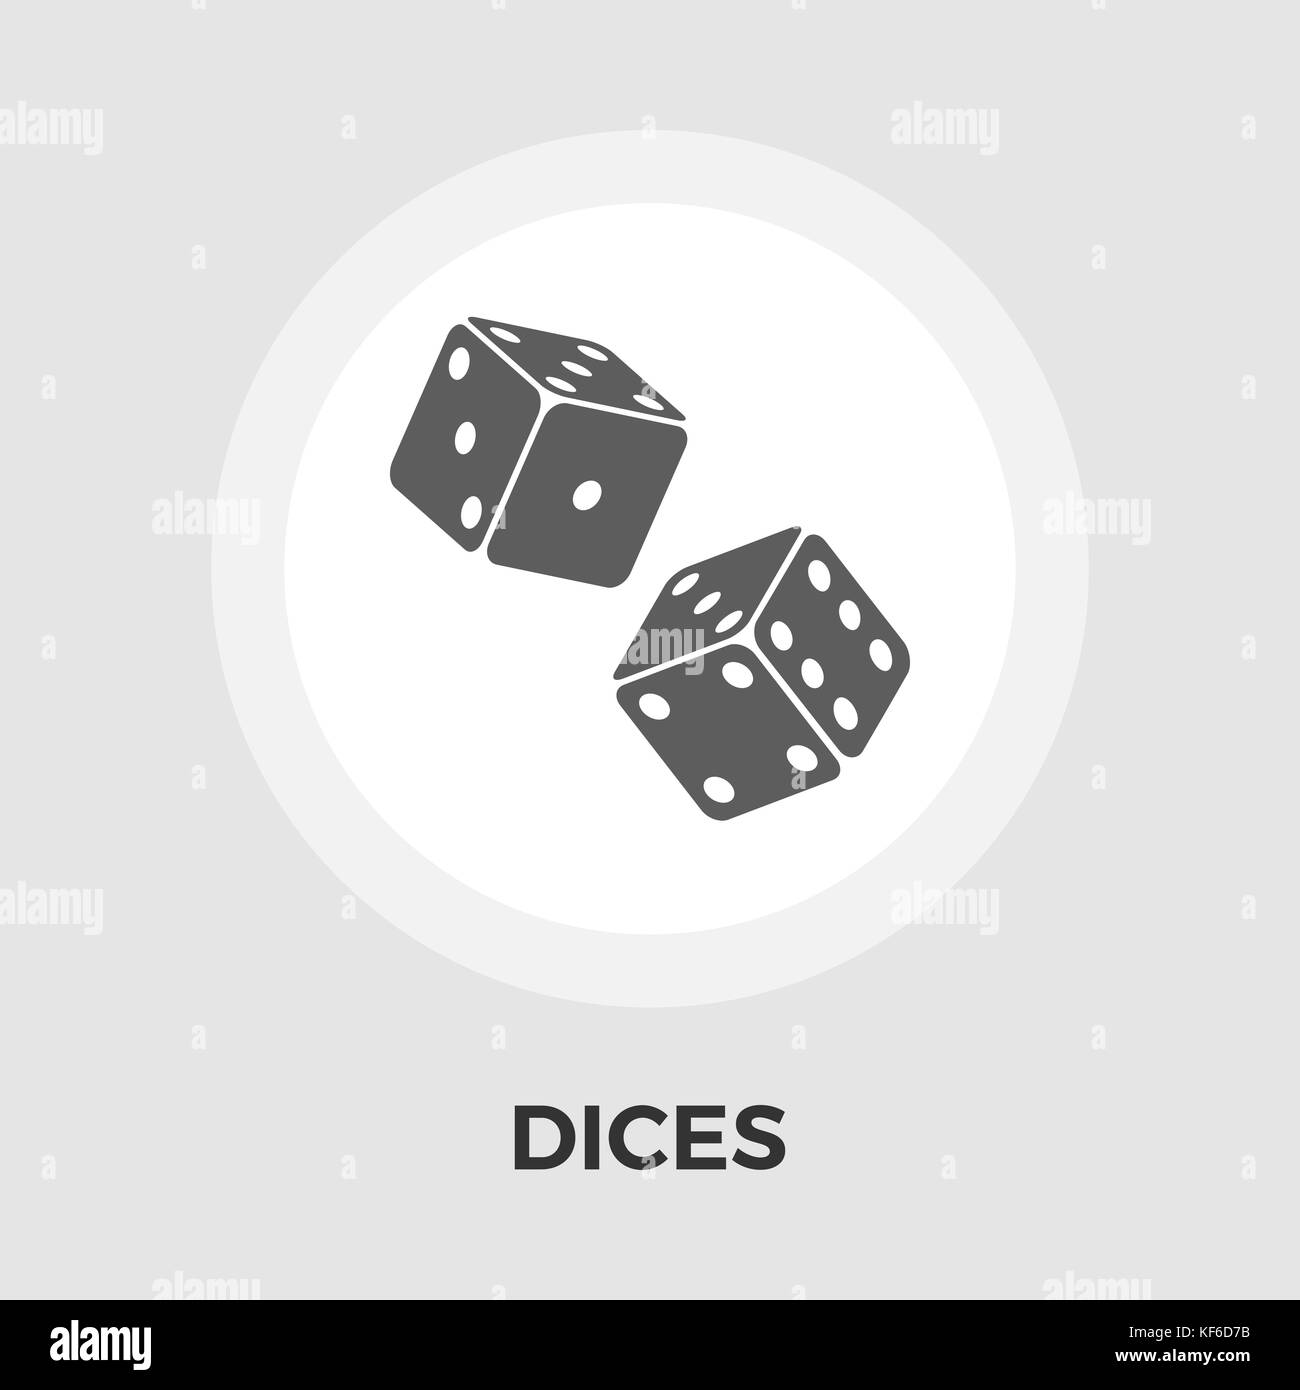 Dices vector flat icon - Stock Image